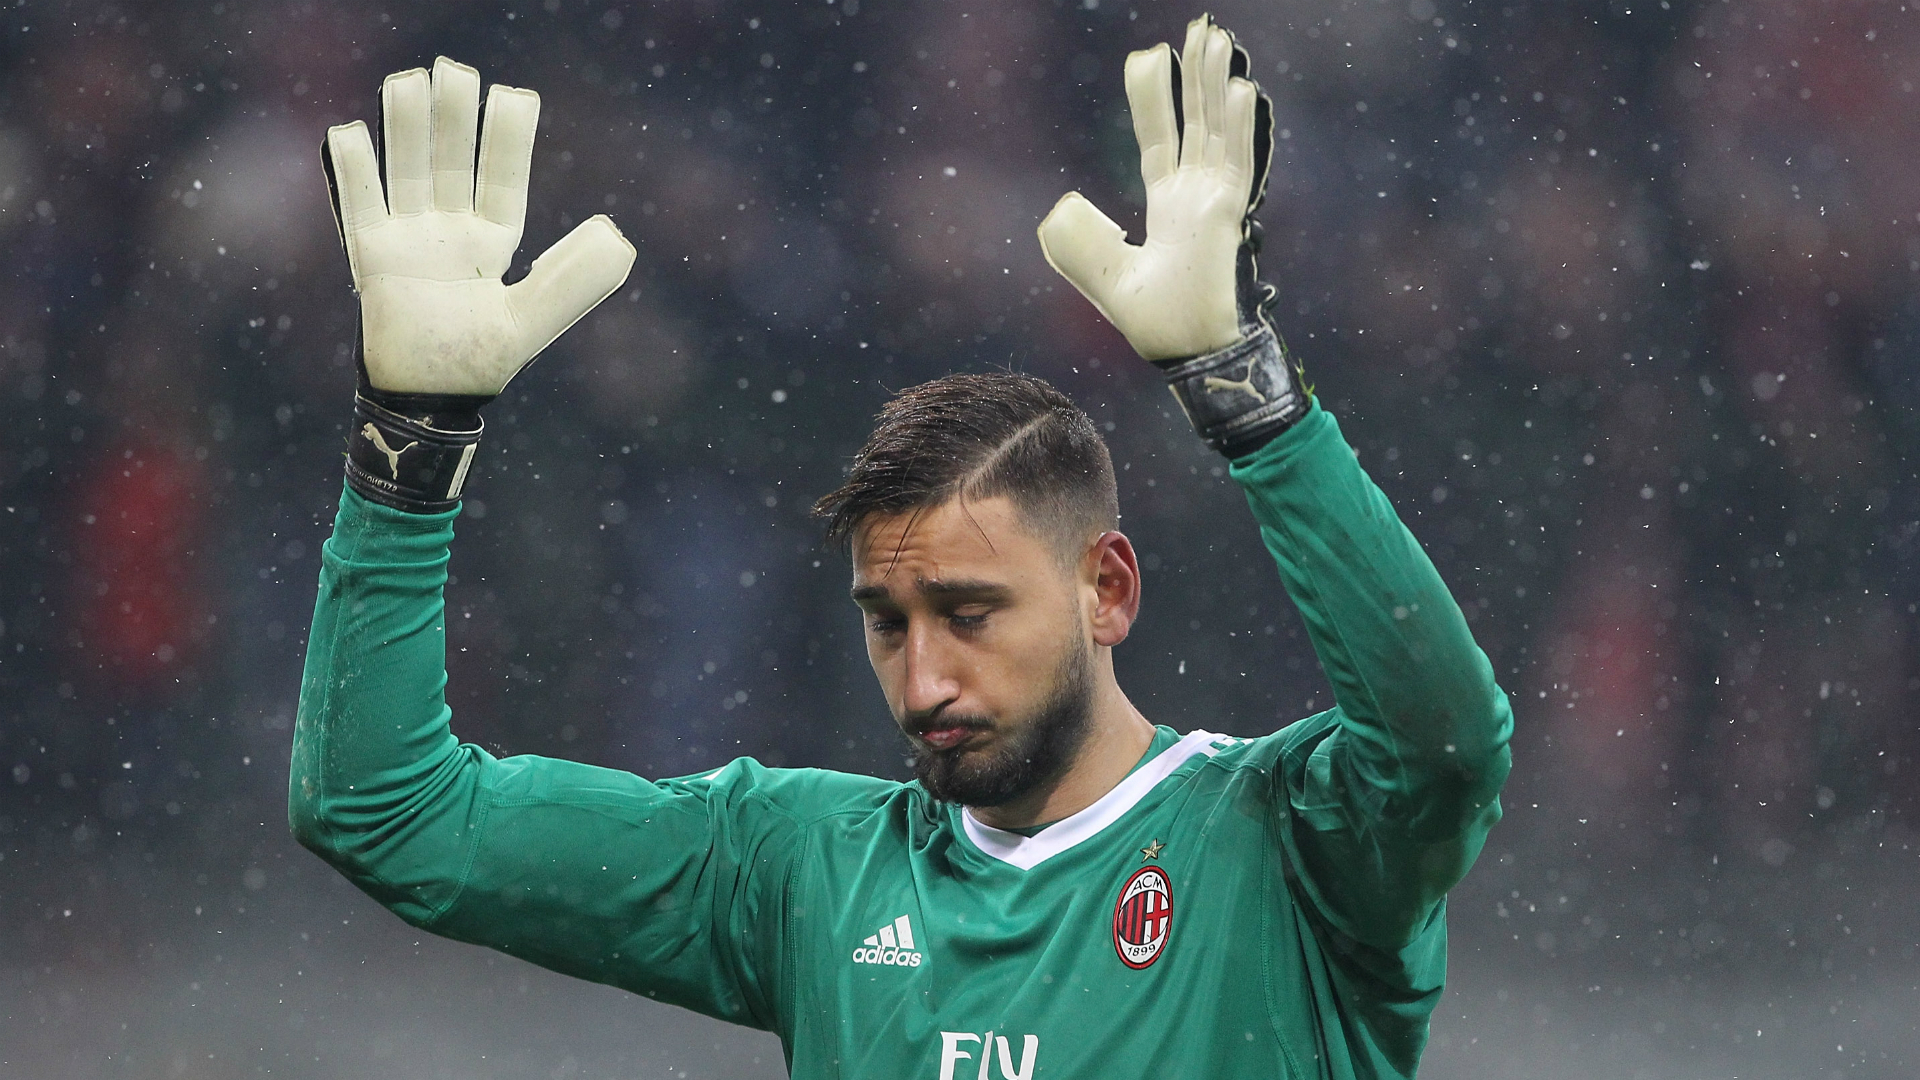 AC Milan aim thinly-veiled jab at Raiola over Donnarumma fiasco